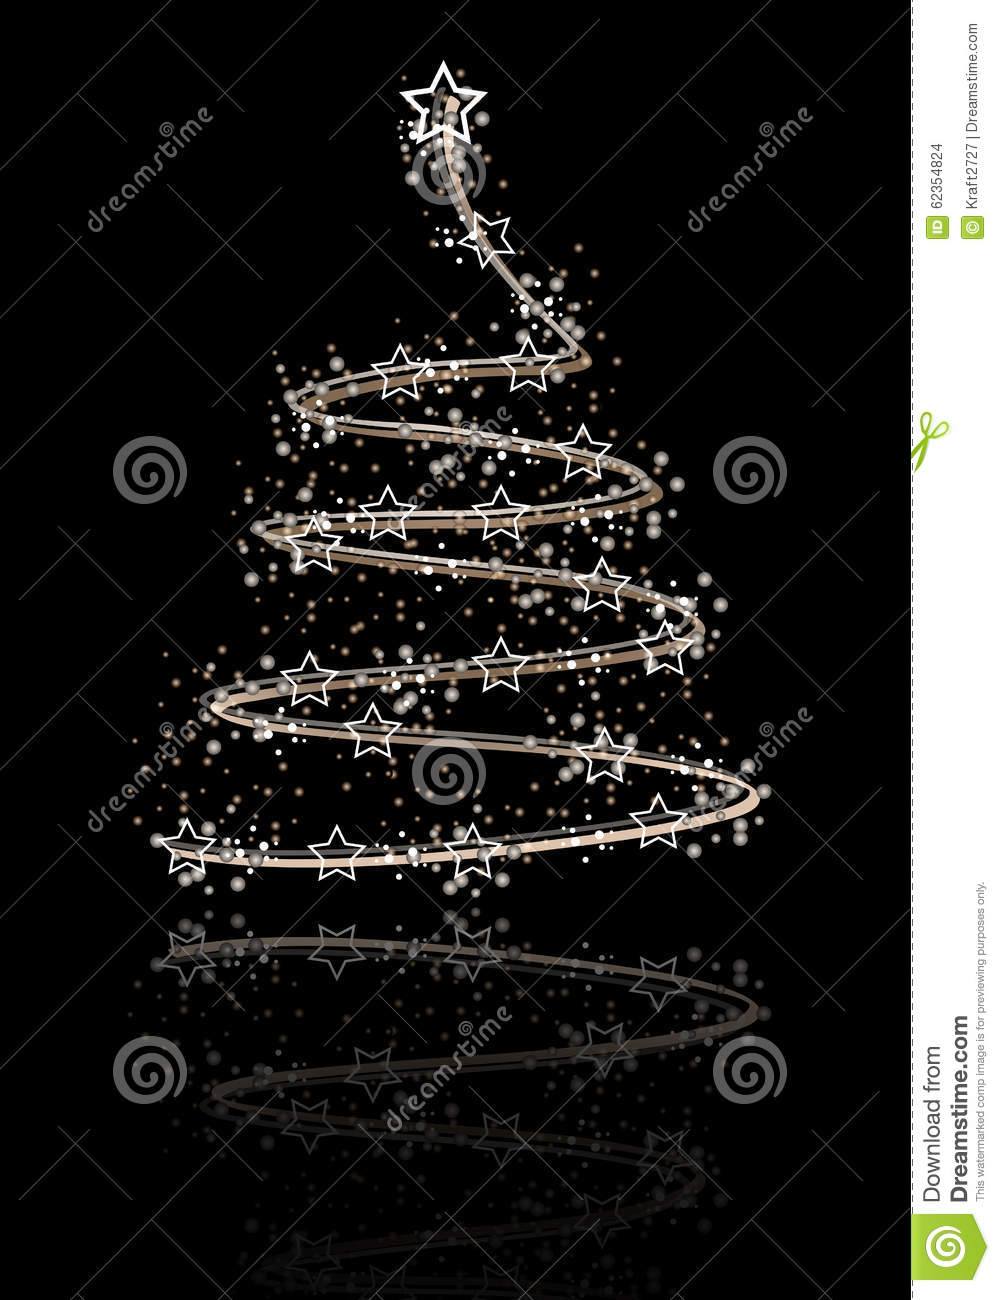 the silver abstract christmas tree on the black background stock